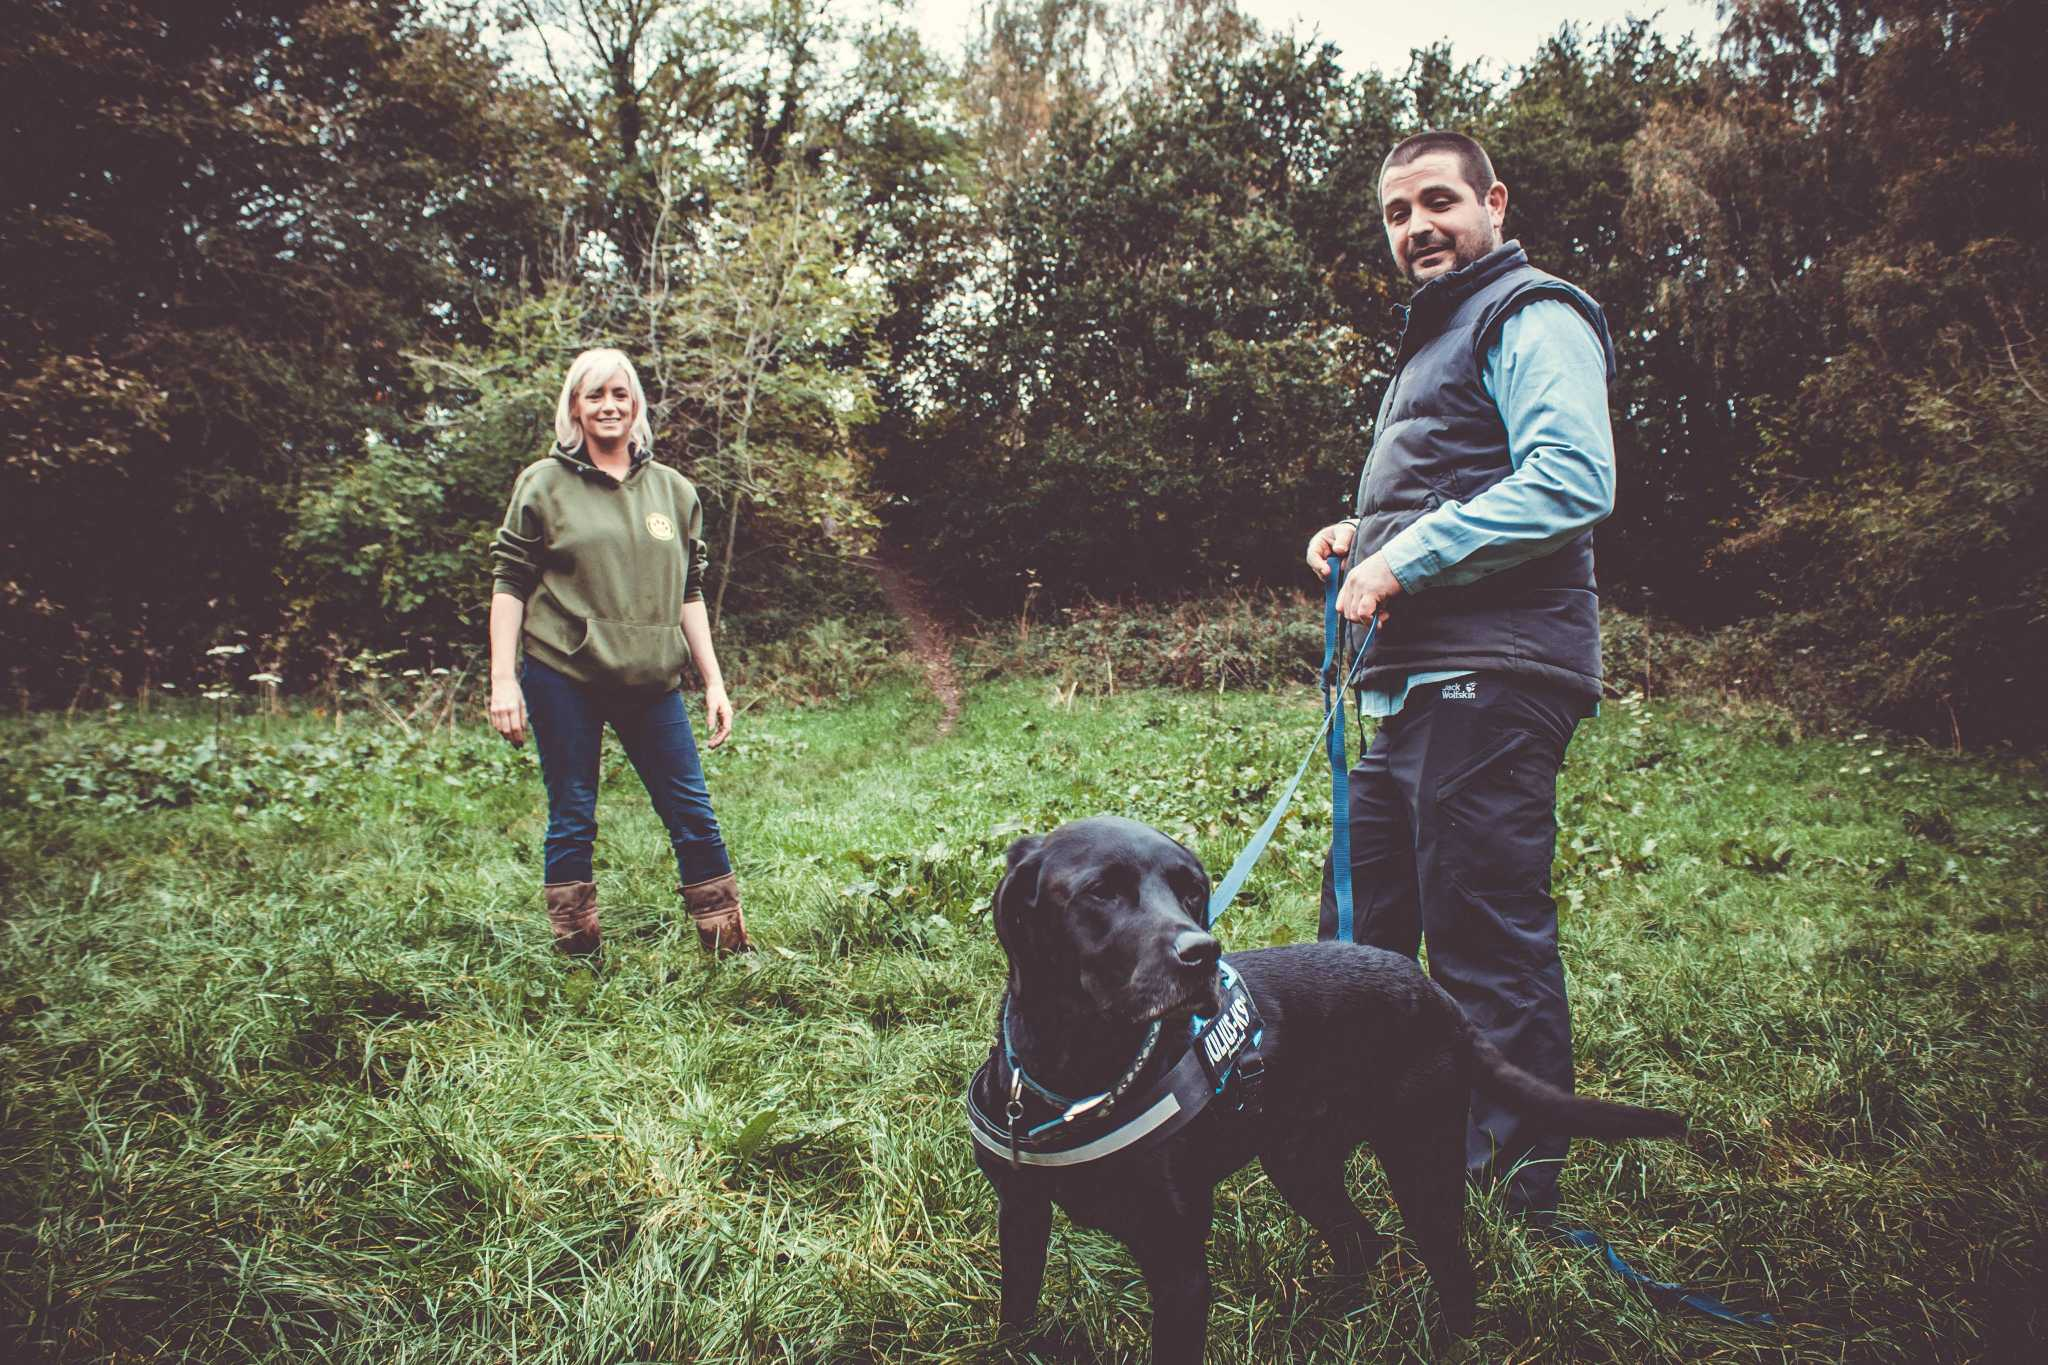 Kevin is being instructed by the fabulous Louise Elizabeth Wilson of Conservation K9 Consultancy on one of her courses for dog trainers.